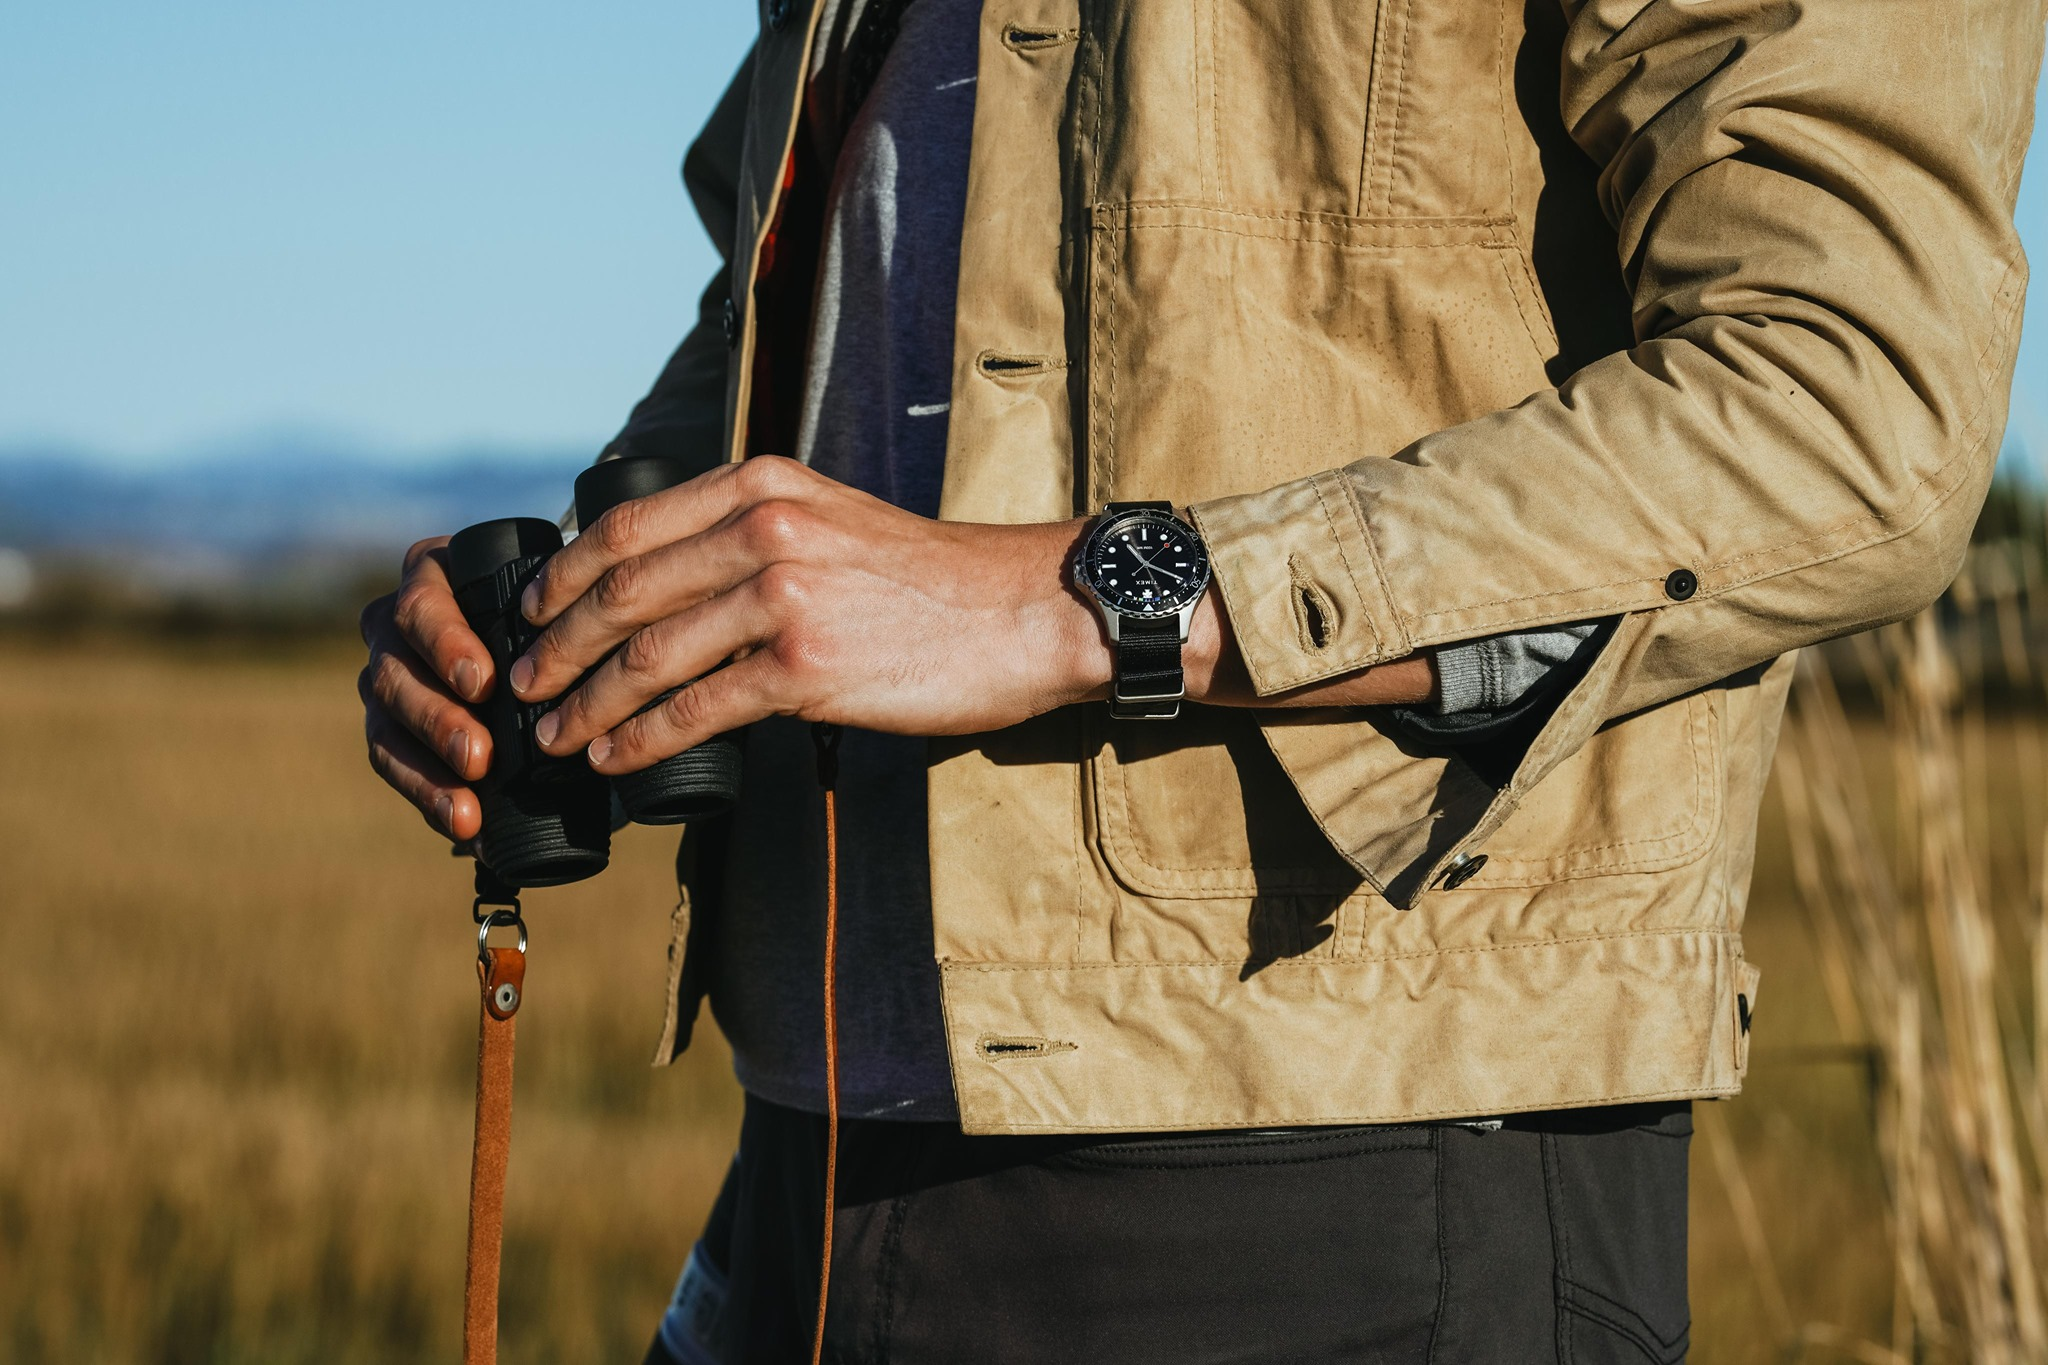 The Best Slim Watches For Men